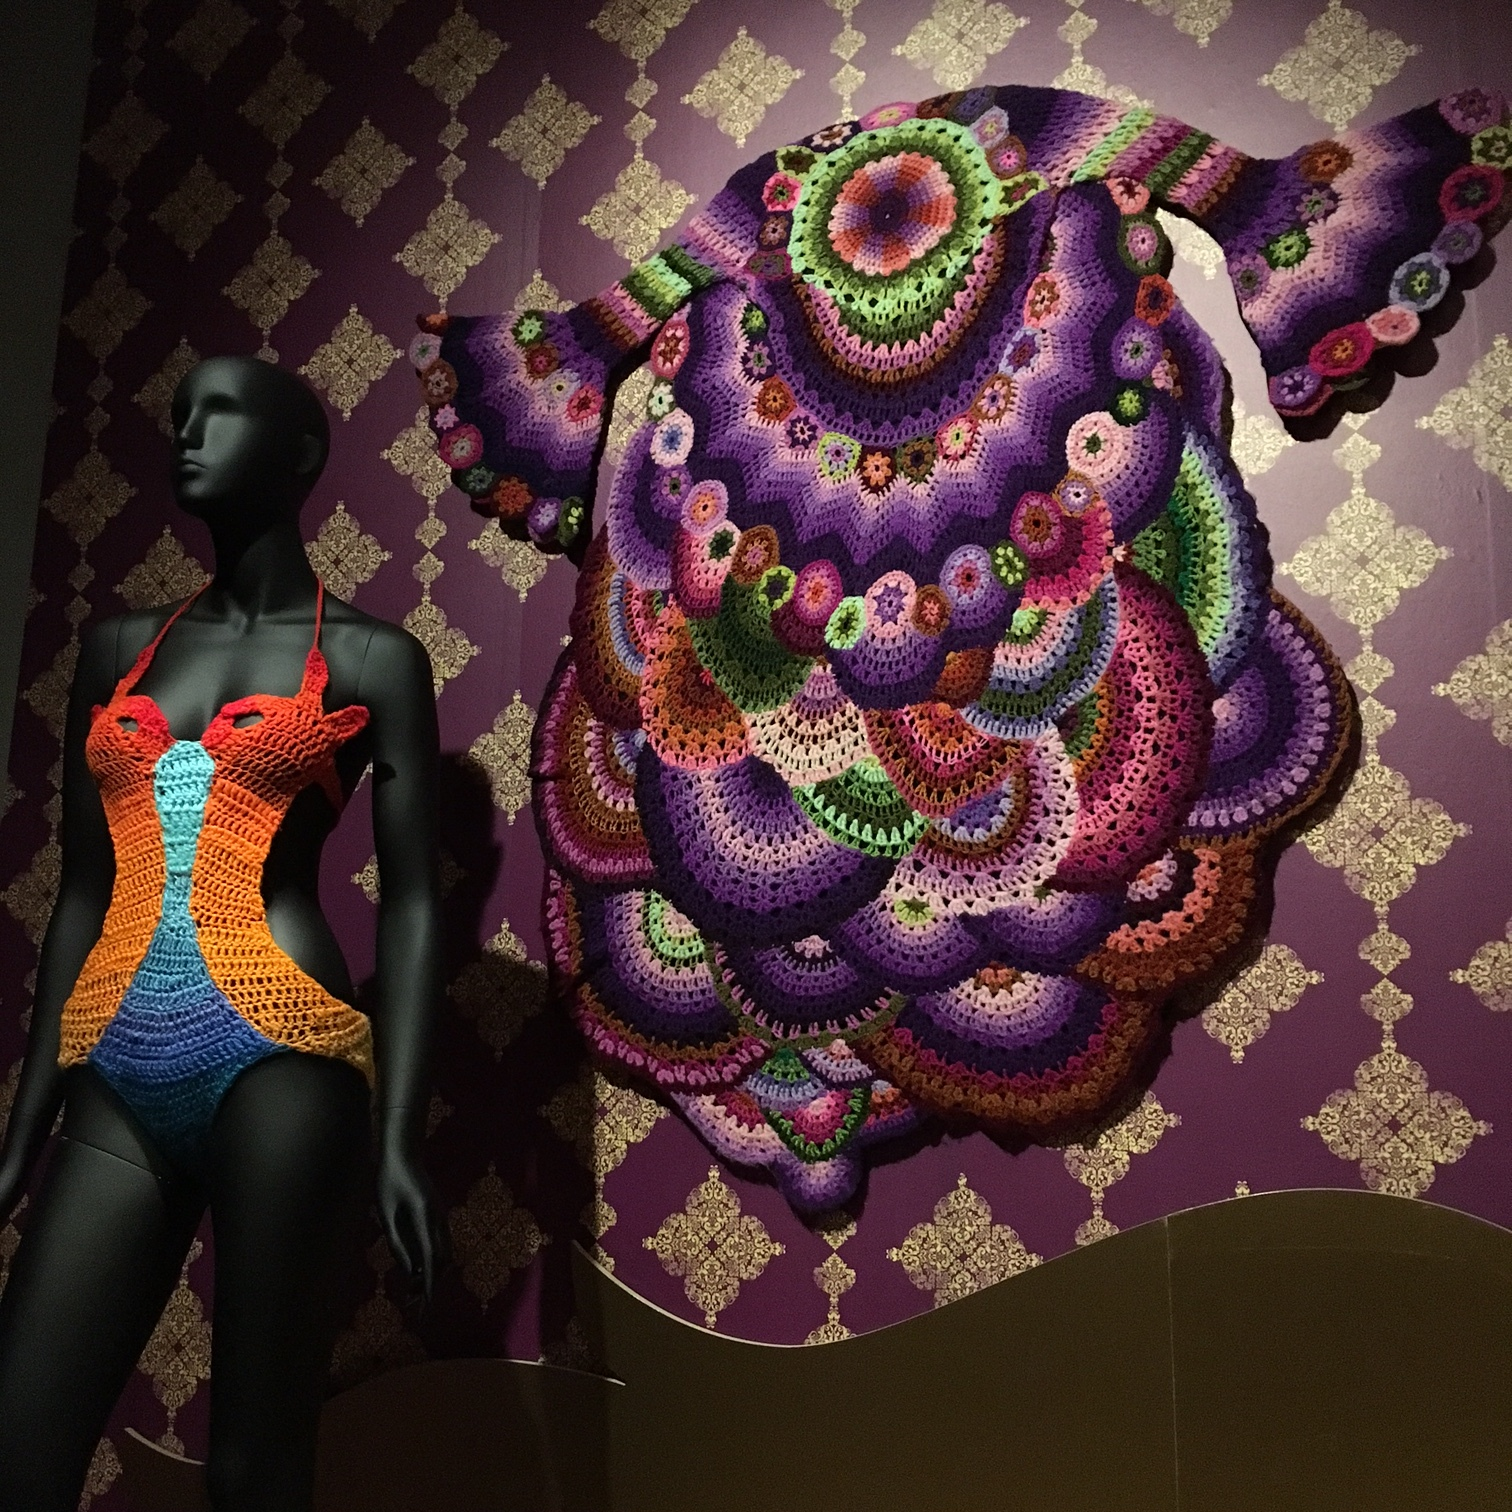 Amazing crocheted couture at the  Museum of Arts And Design .